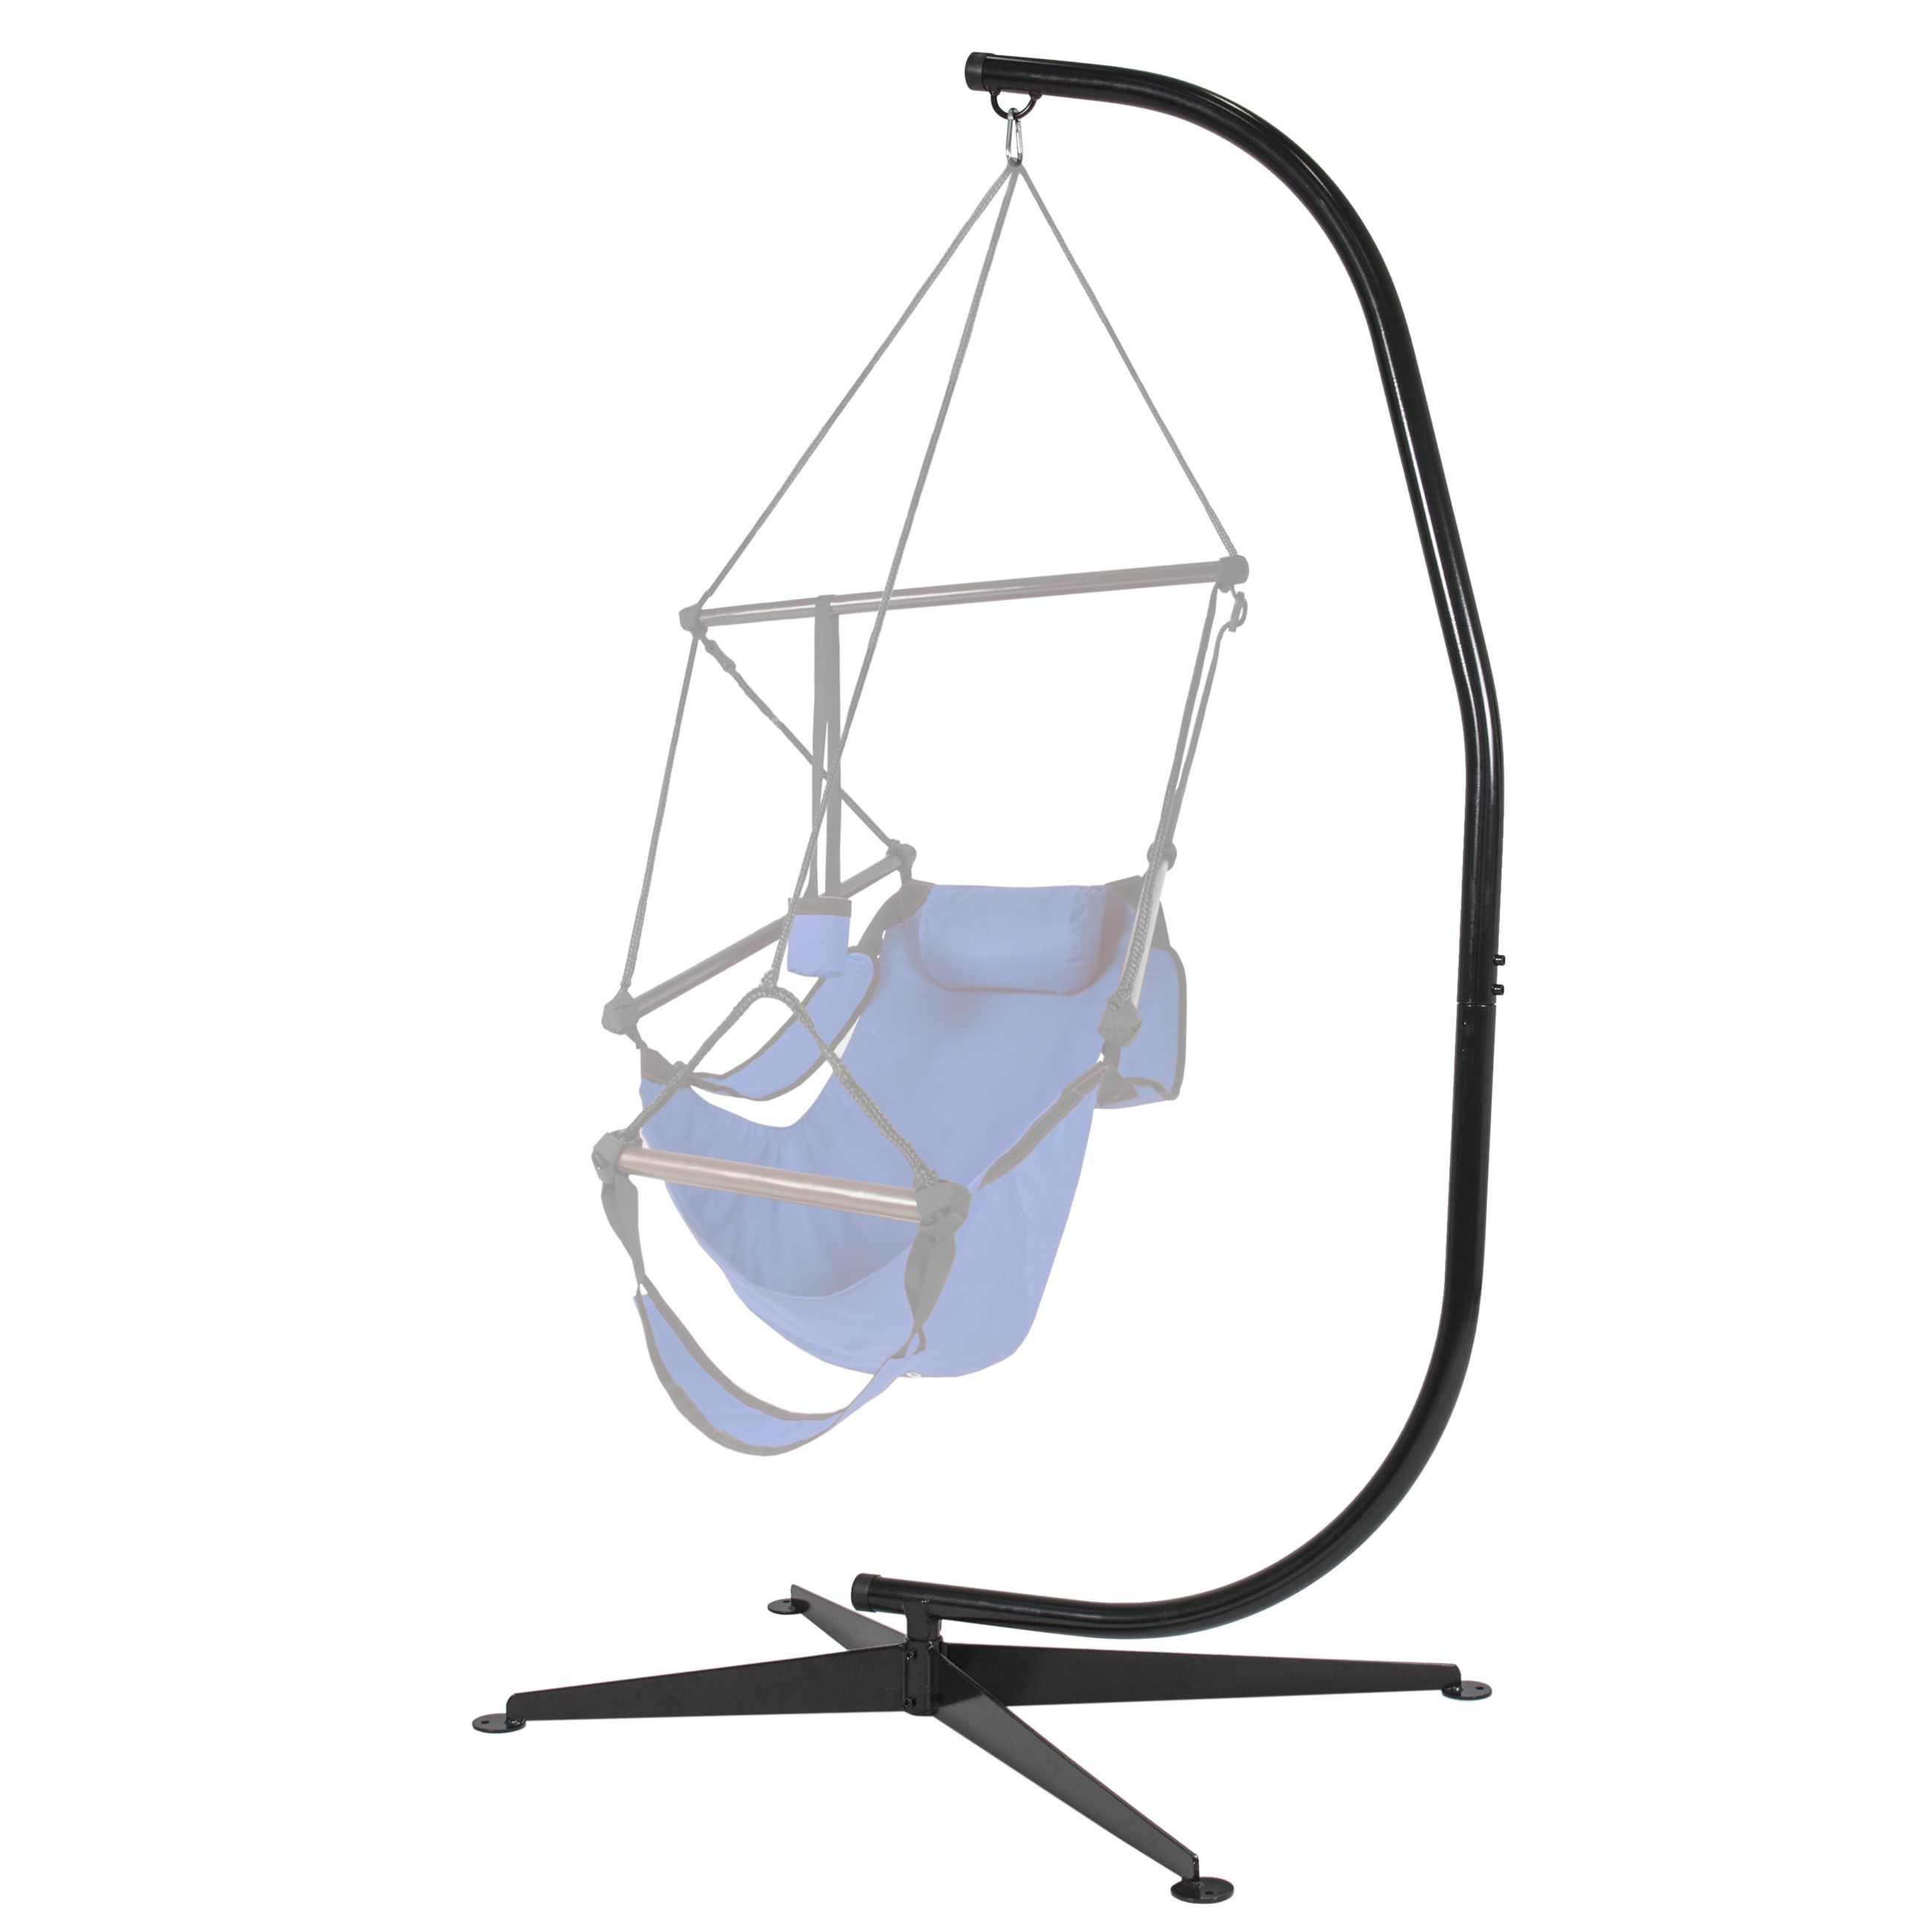 Superior Hammock Chair C Stand Solid Steel For Hammock Air Porch Swing Chair New  #Home #Garden #Yard, #Outdoor #Living #SKY330